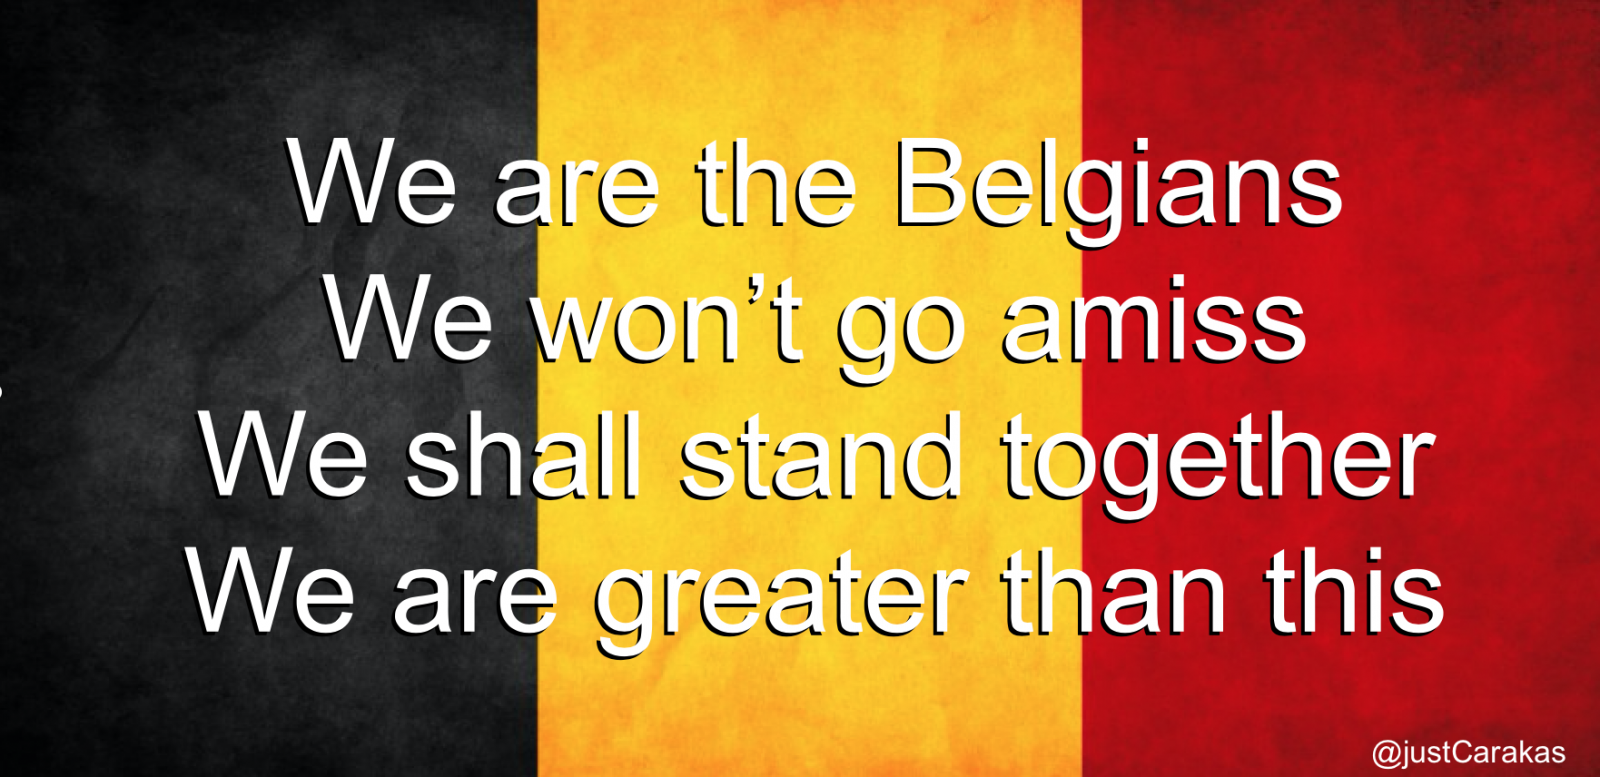 We are the Belgians. We won't go amiss. We shall stand together. We are greater than this.